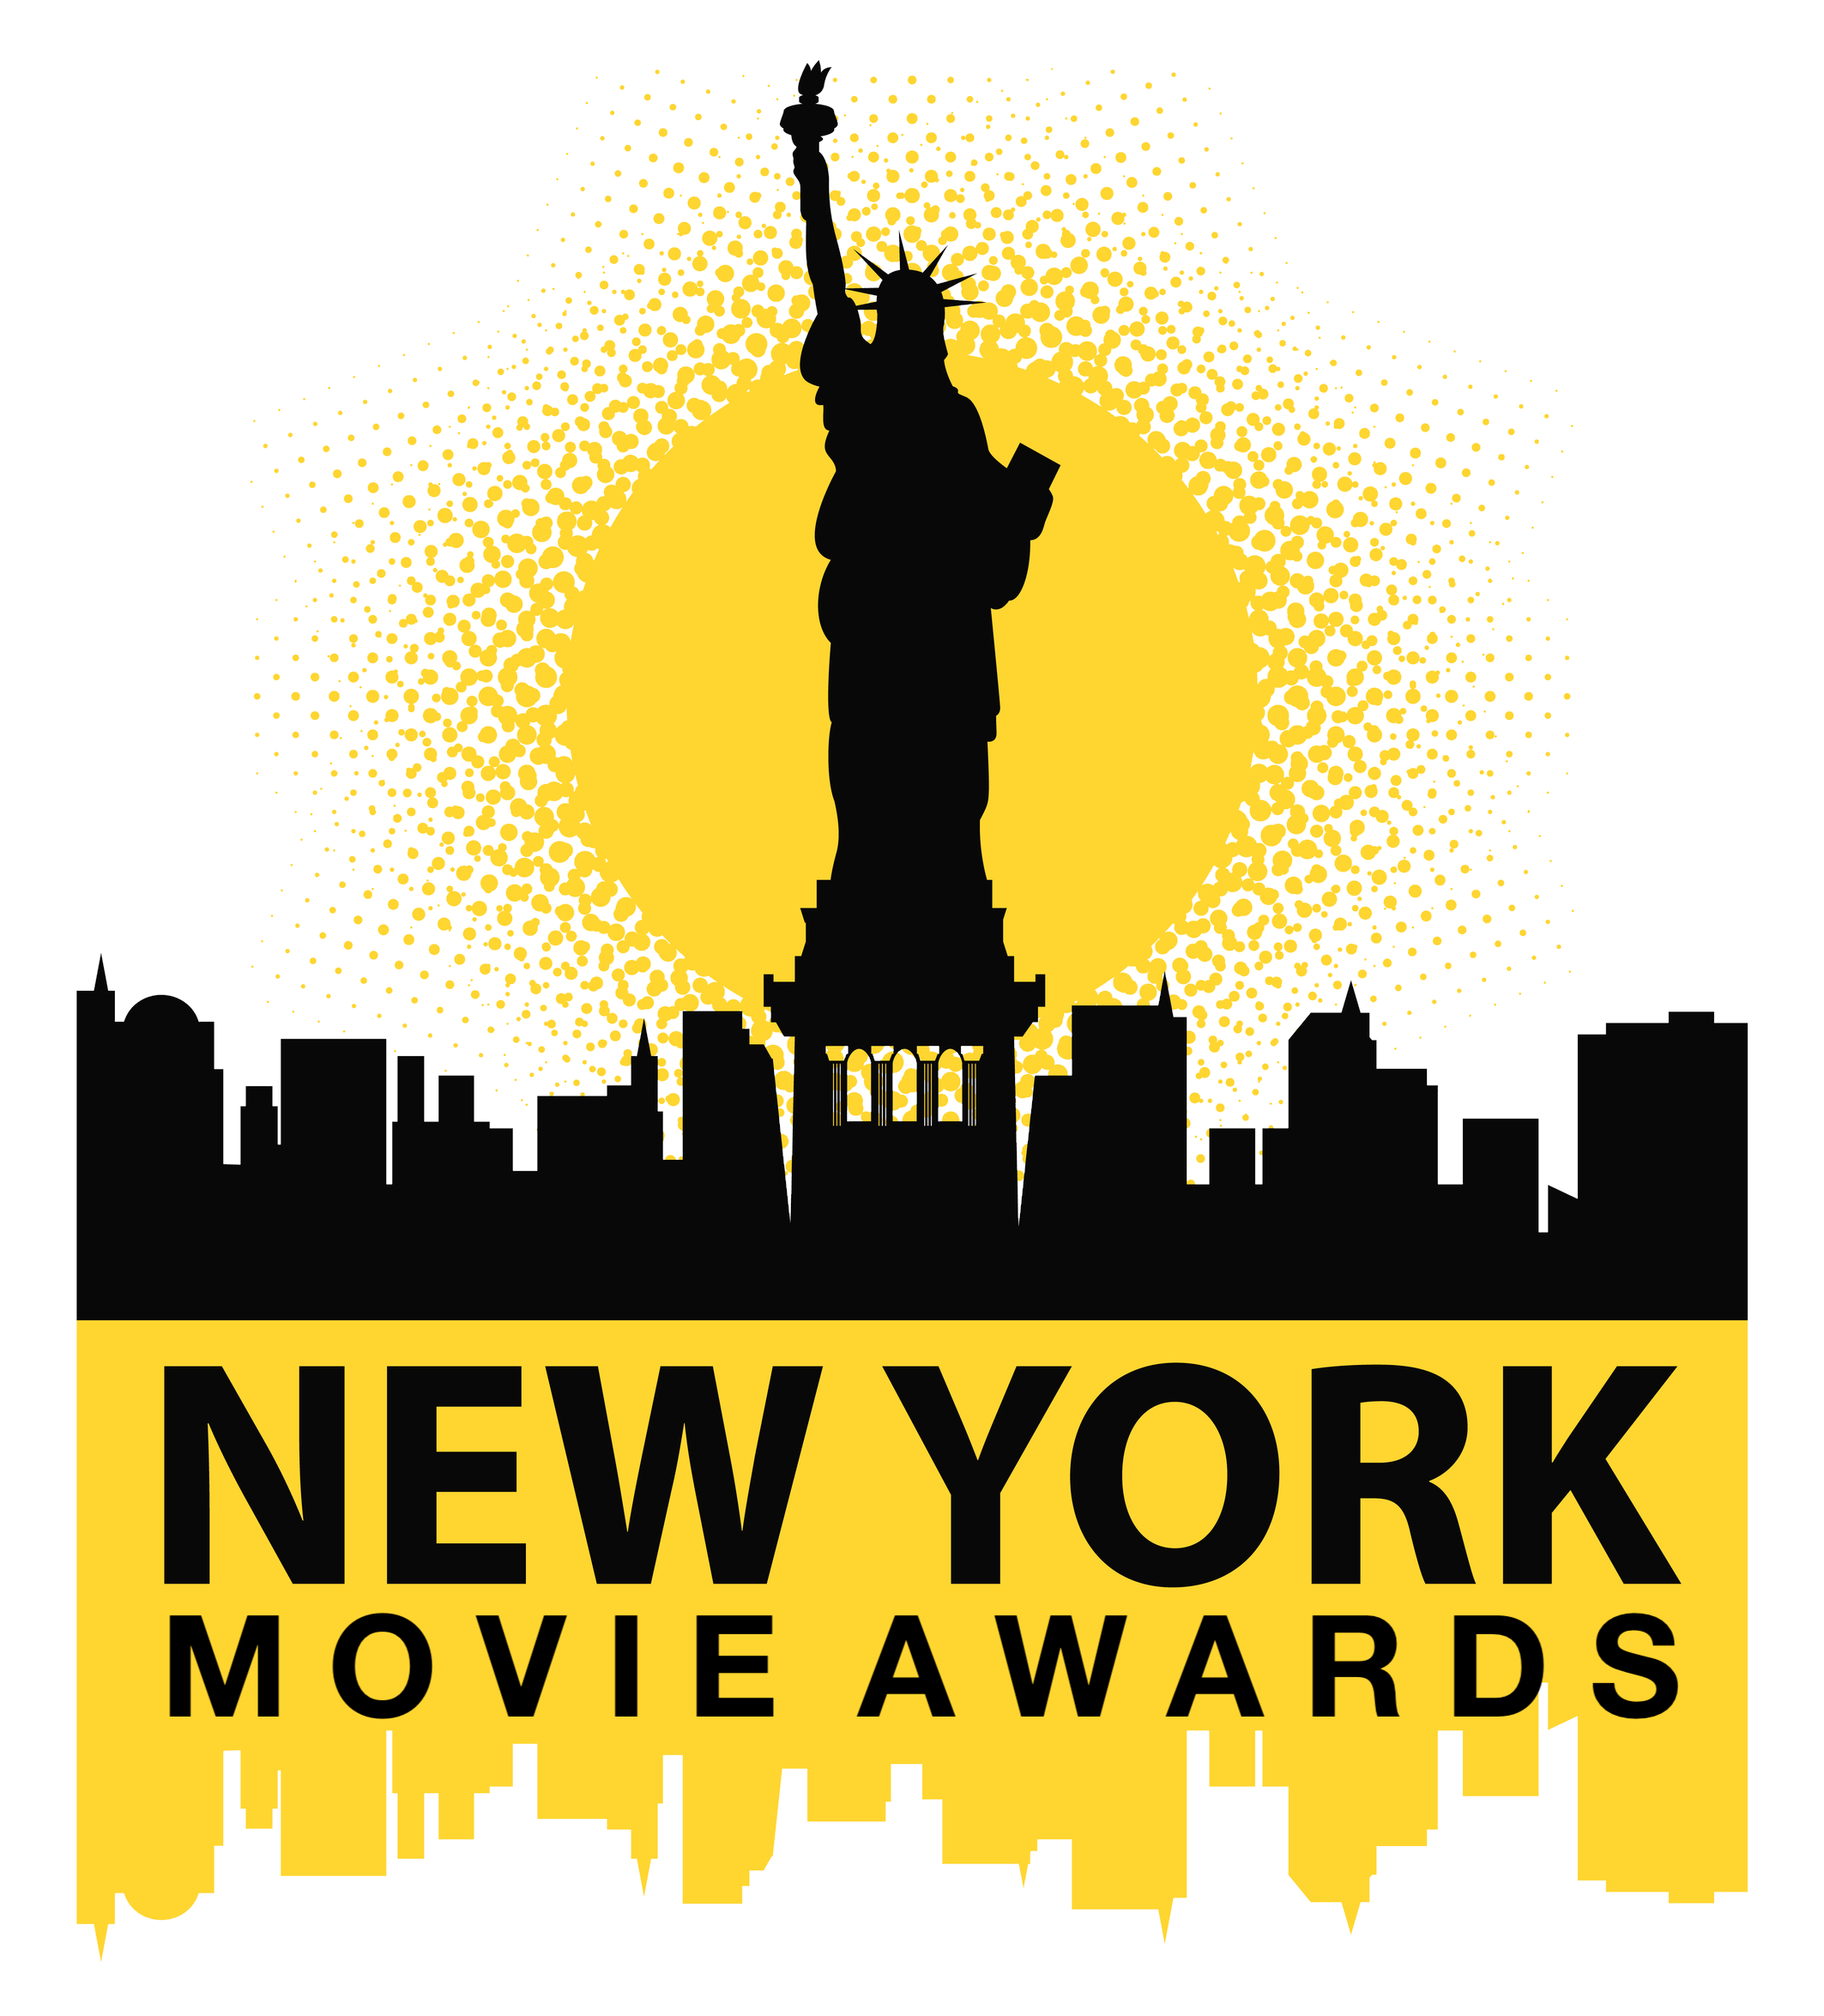 NEW YORK MOVIE AWARDS